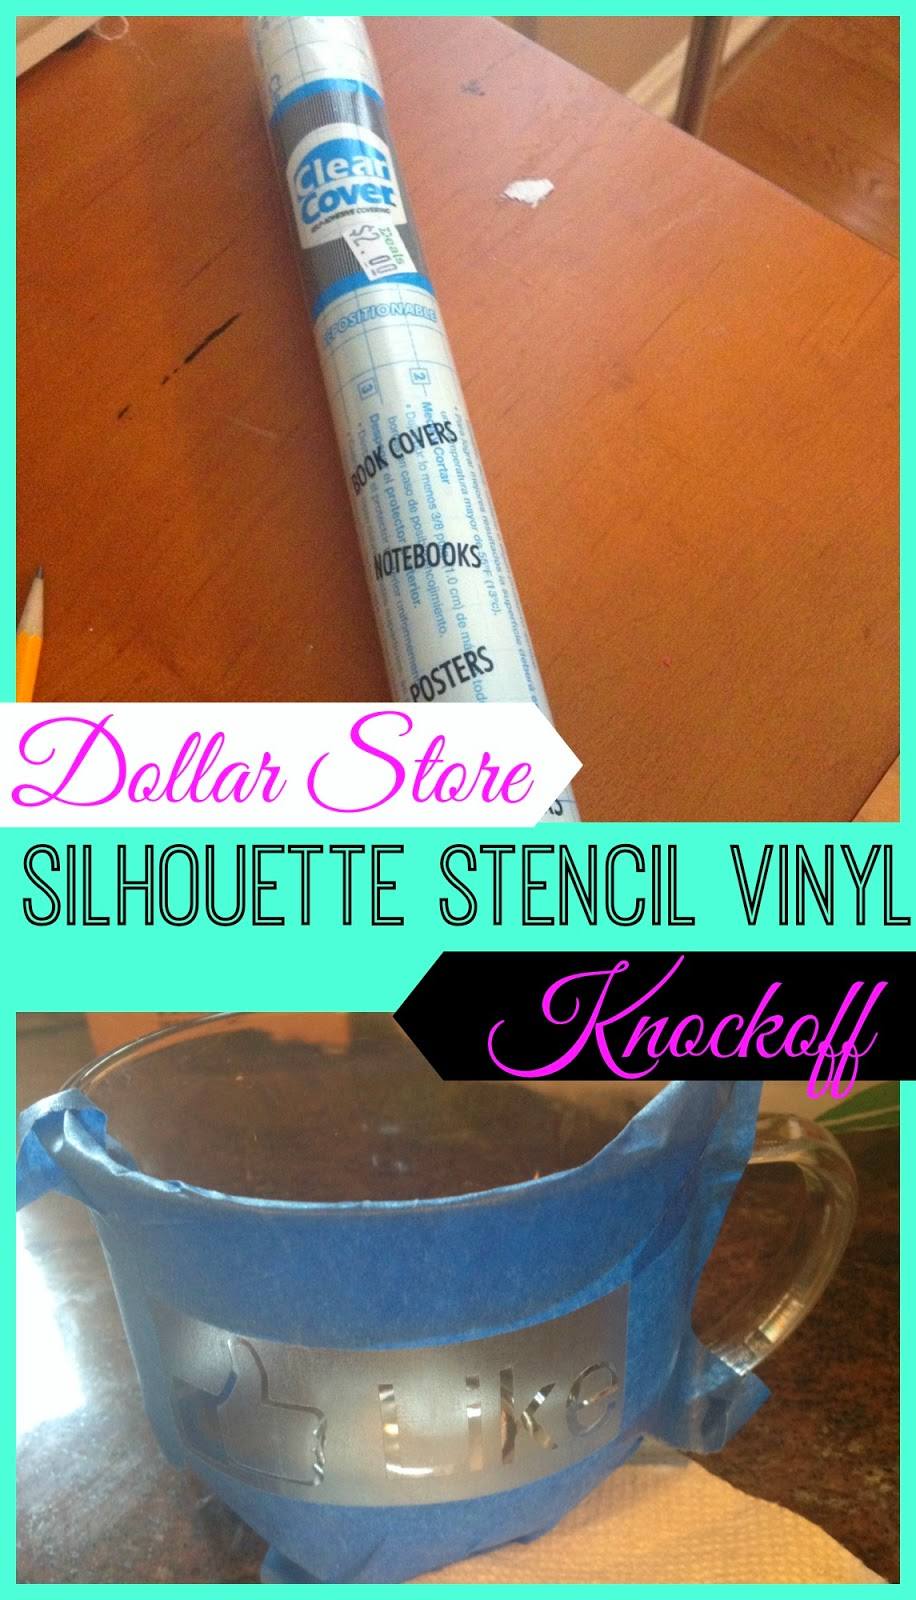 Dollar Store Stencil Vinyl Material For Silhouette